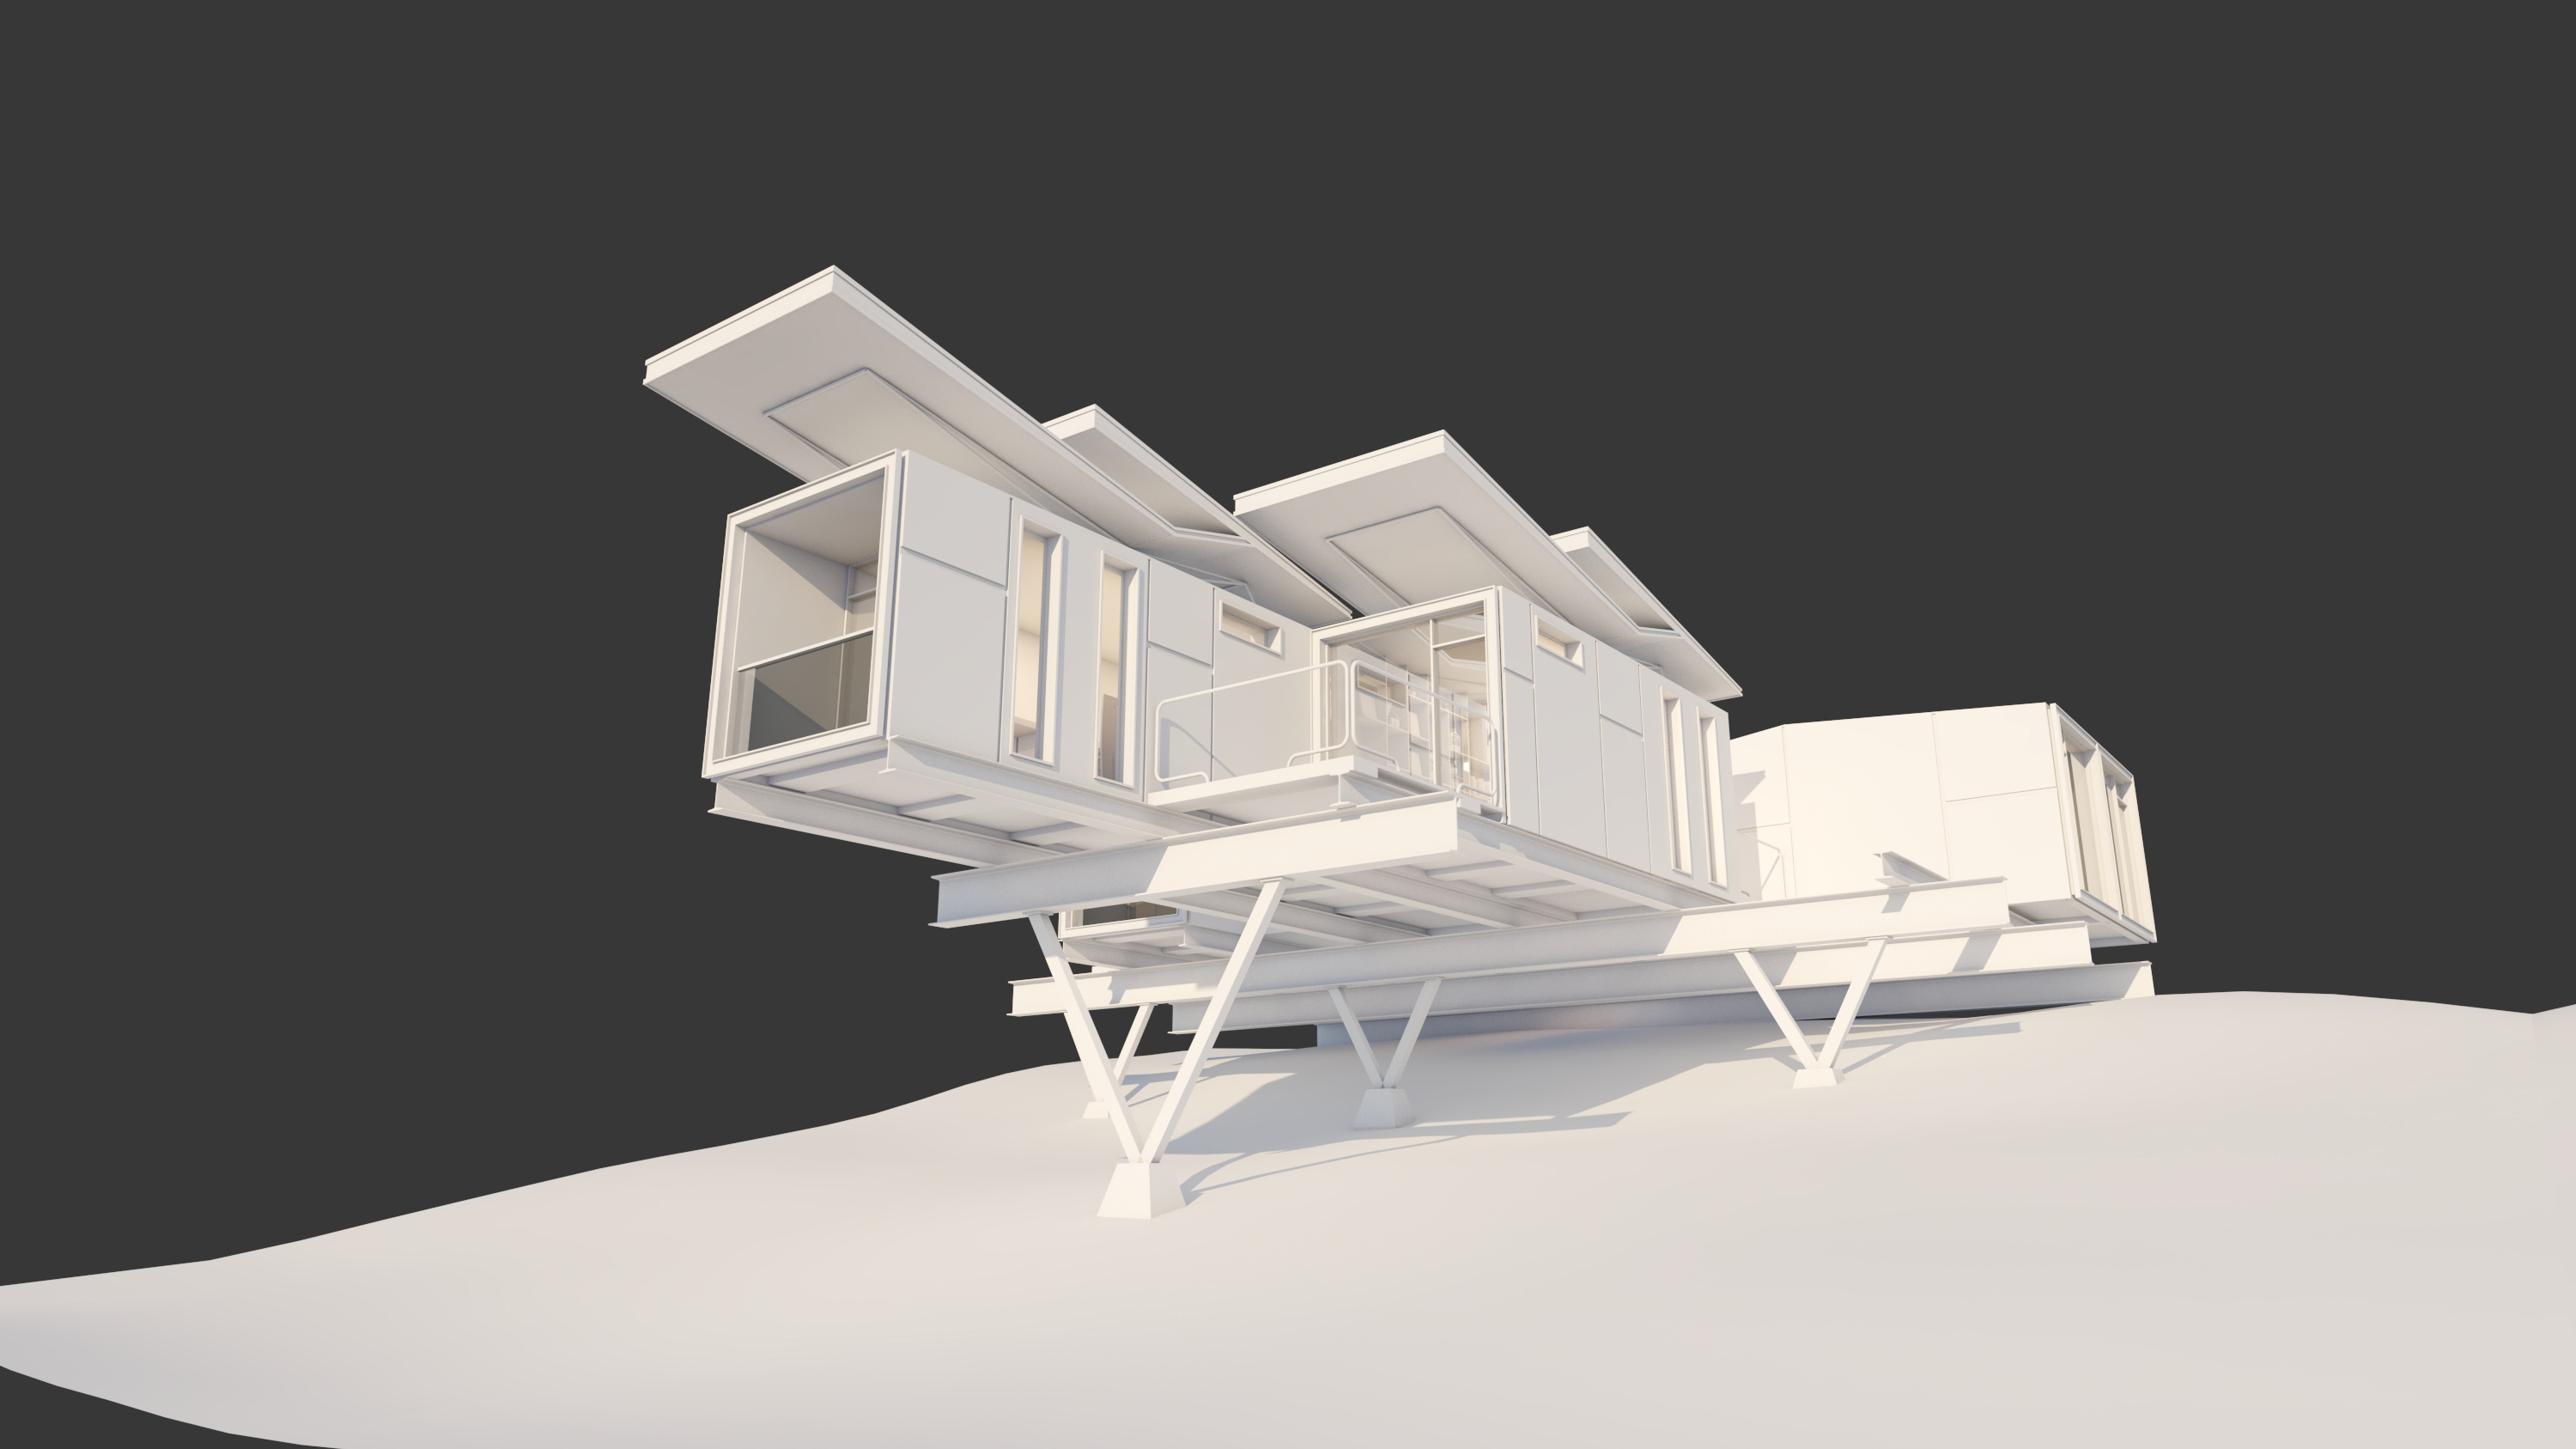 V-Ray For Sketchup To Make A Work Container Cabin 11